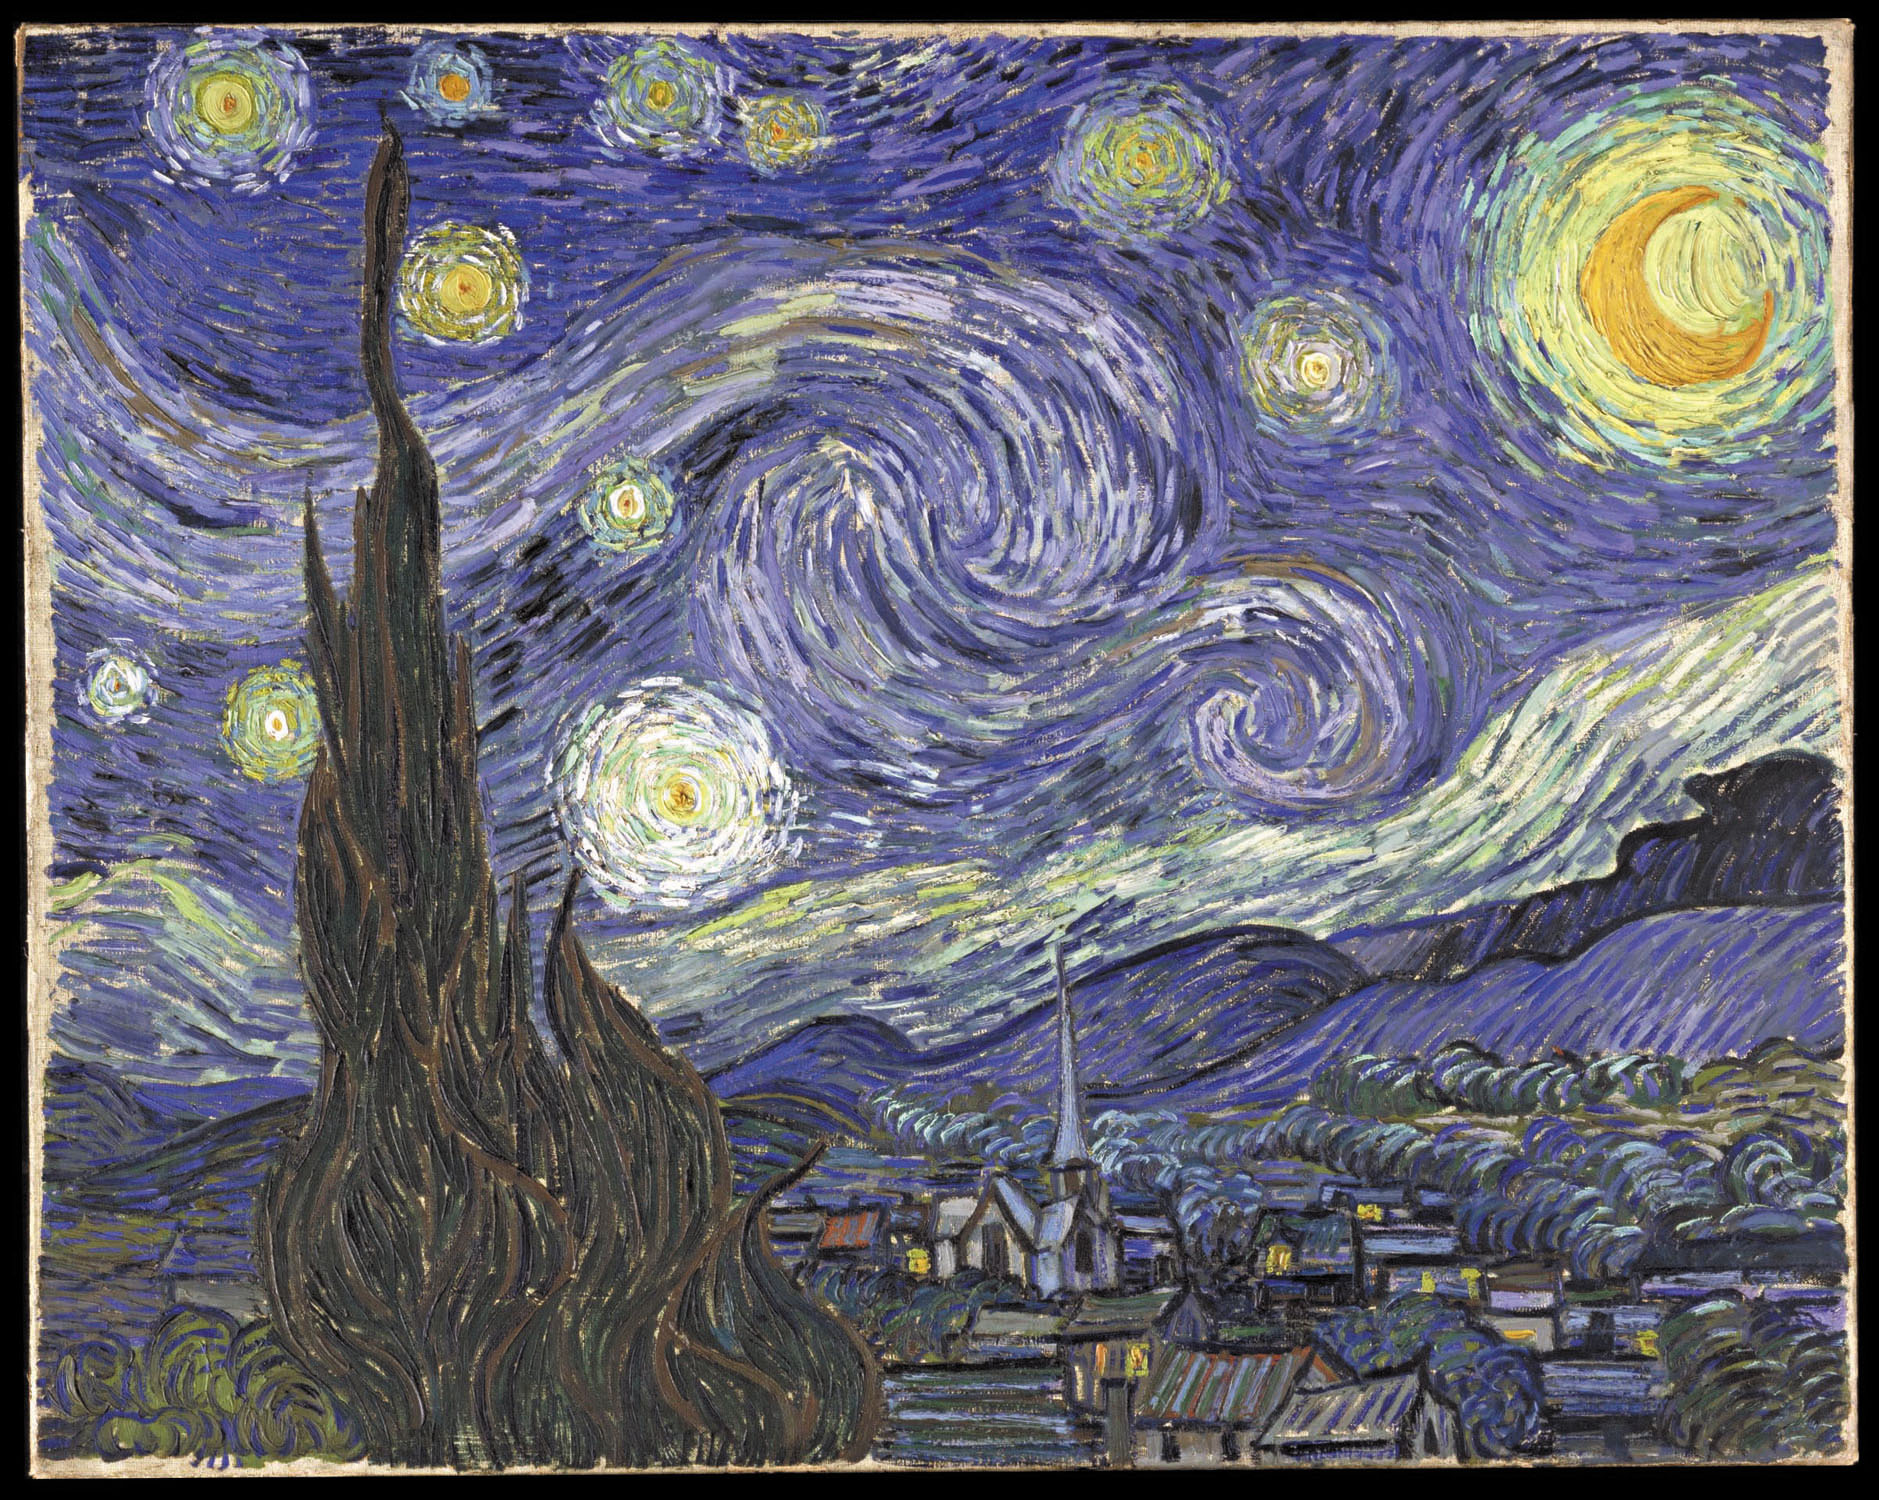 Vincent van Gogh, The Starry Night, 1889, oil on canvas, 73.7 x 92.1 cm. (The Museum of Modern Art)